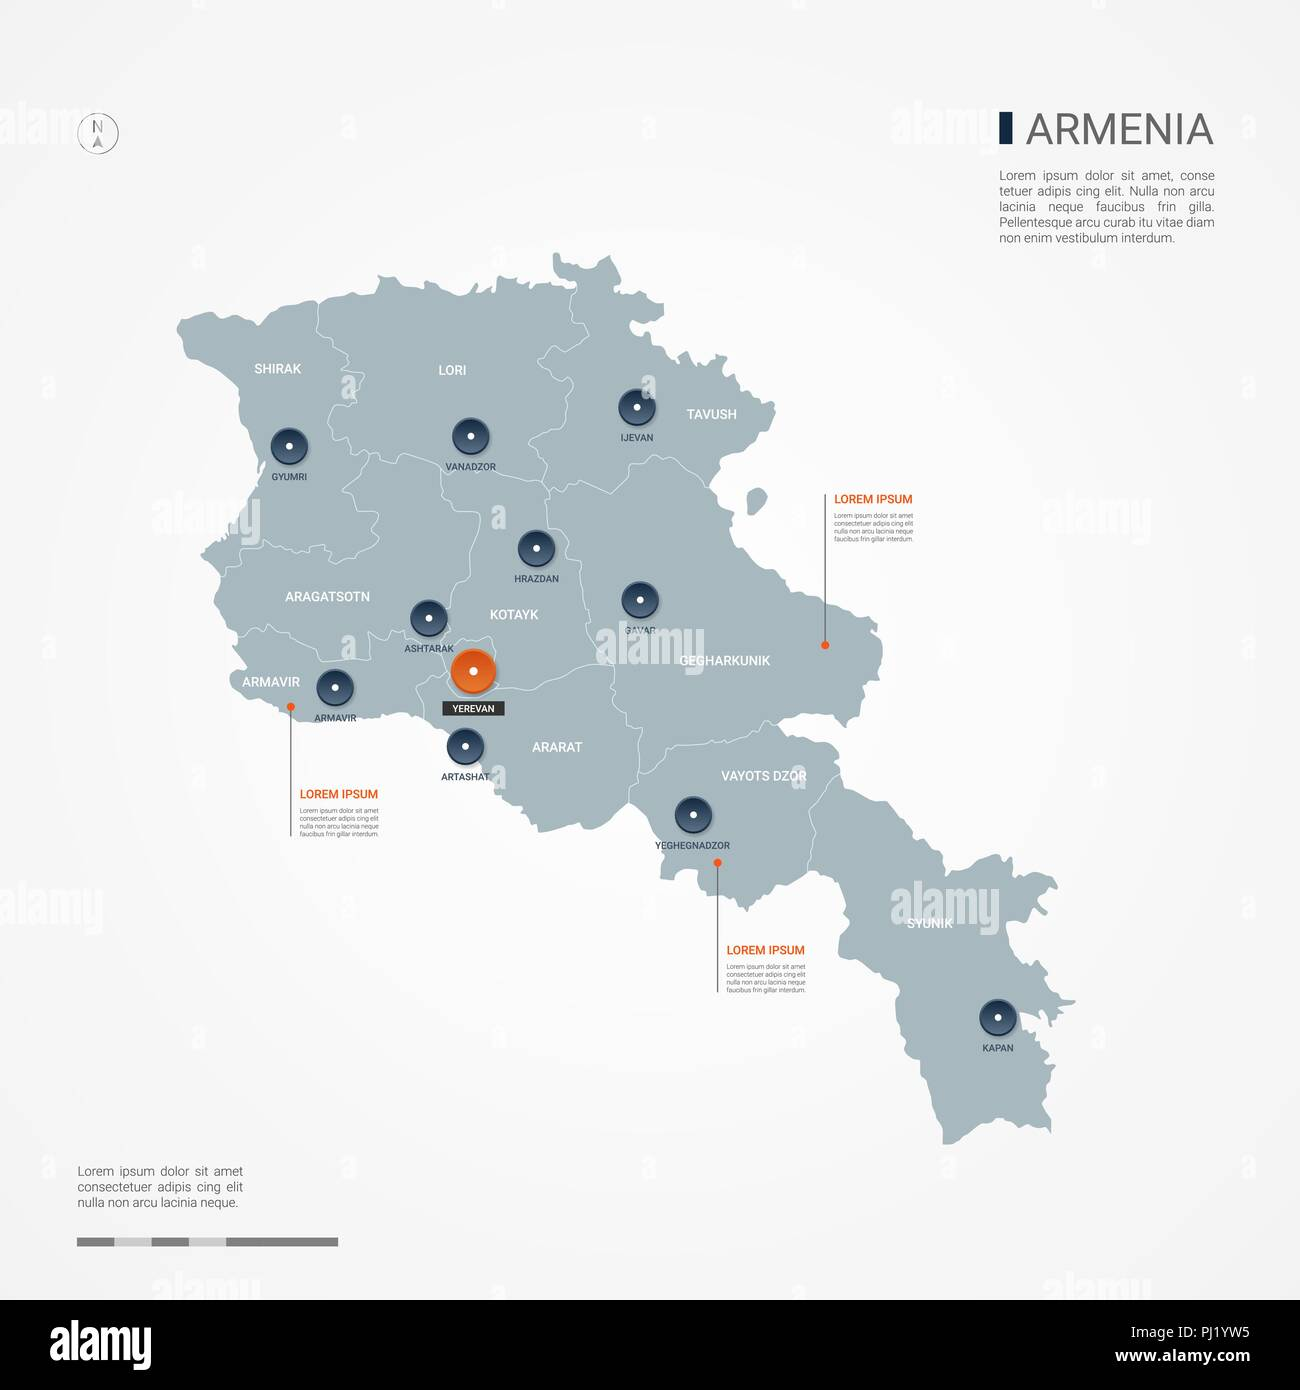 Armenia map with borders, cities, capital and administrative ... on map of southern europe cities, map of central america cities, map of france cities, map of uk cities, map of china cities, map of s korea cities, map of asia cities, map of chile cities, map of latin america cities, map of west germany cities, map of brazil cities, map of western ukraine cities, map of india cities, map of the dominican republic cities, map of dutch cities, map of new zealand cities, map of ussr cities, map of democratic republic of congo cities, map of ireland cities, map of portugal cities,